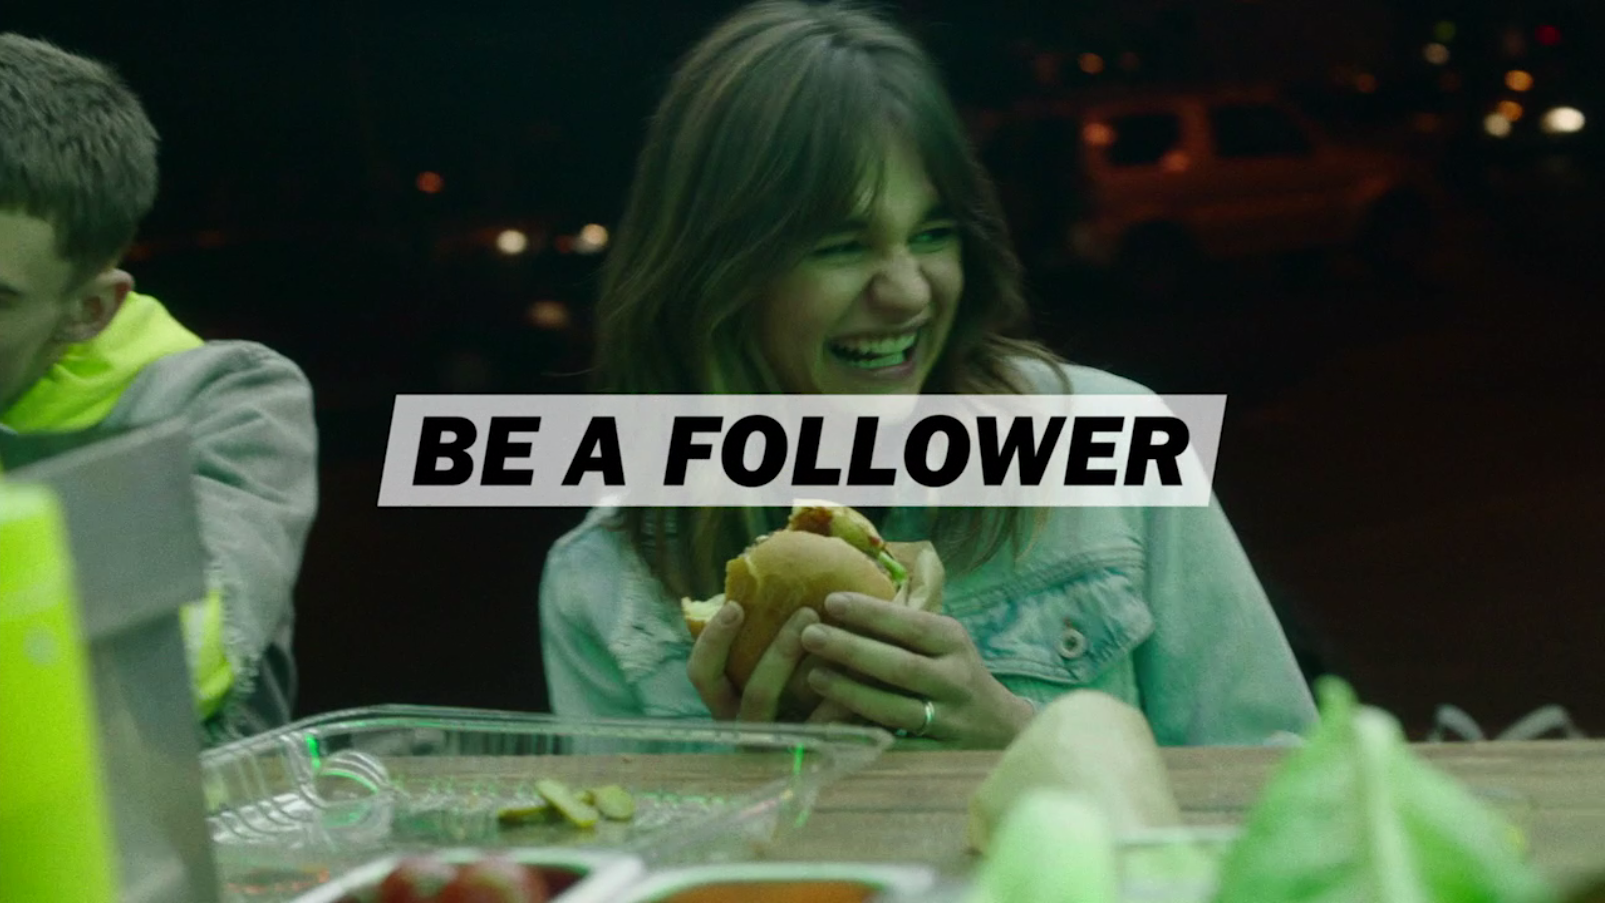 Be a follower Diesel | Collater.al 1